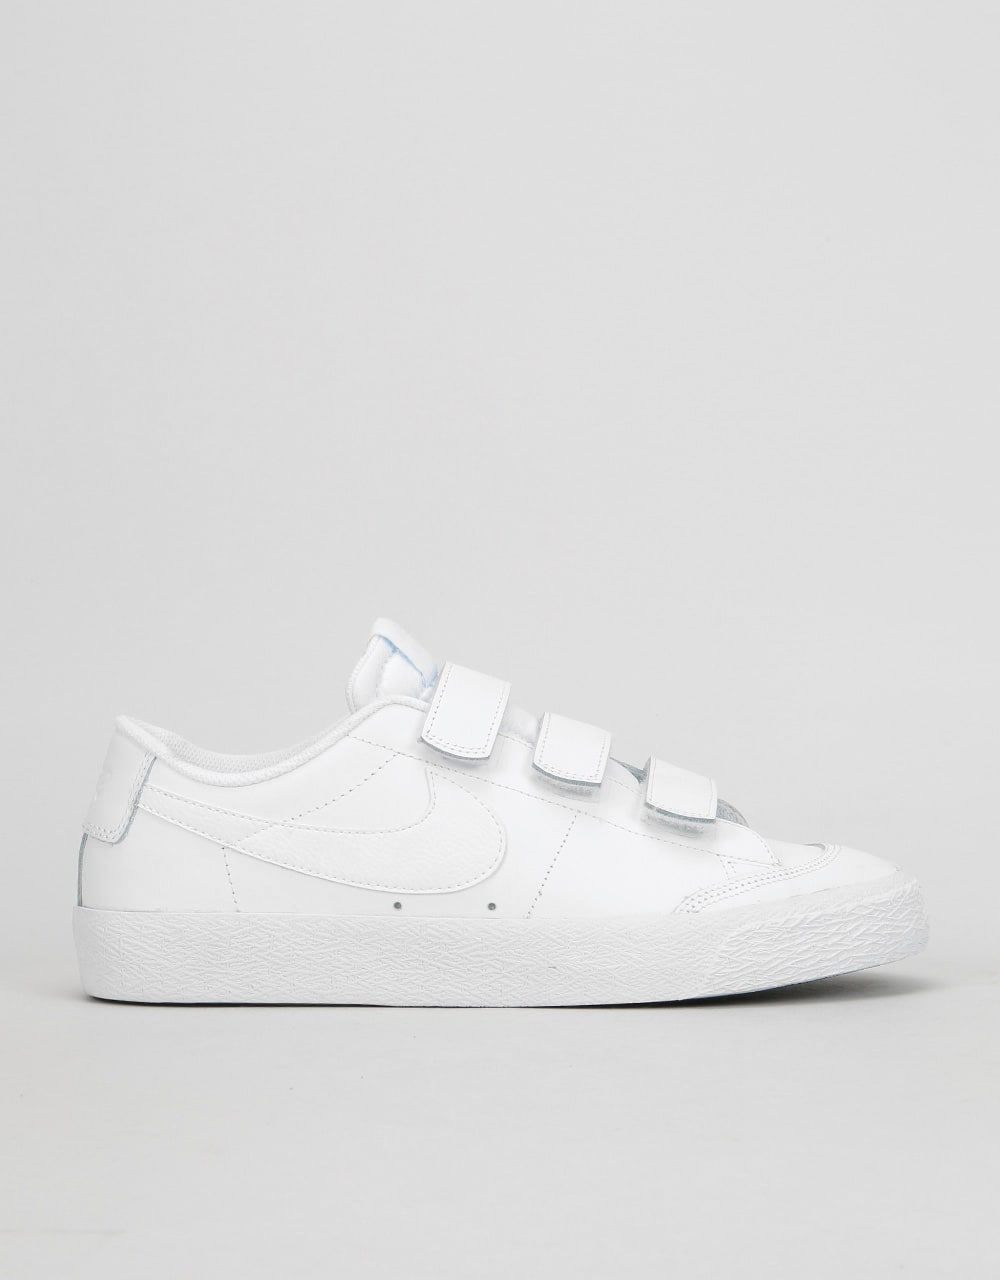 a260db9d4b5 Nike SB Zoom Blazer AC XT Skate Shoes - White White-Black